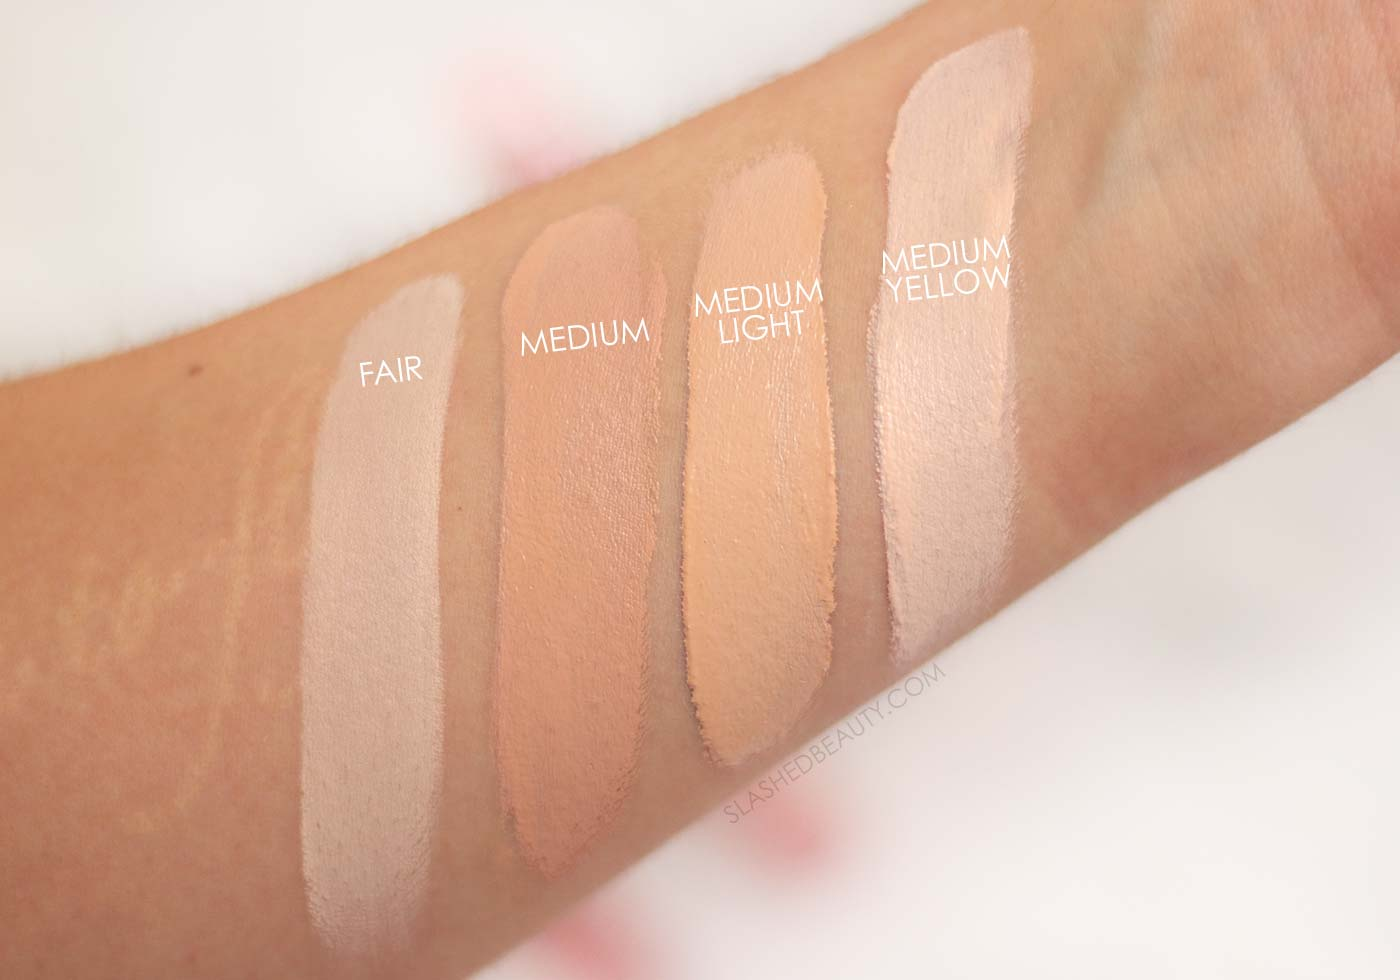 REVIEW: Makeup Revolution Eye Bright Concealer Swatches in Fair and Medium Light | Slashed Beauty